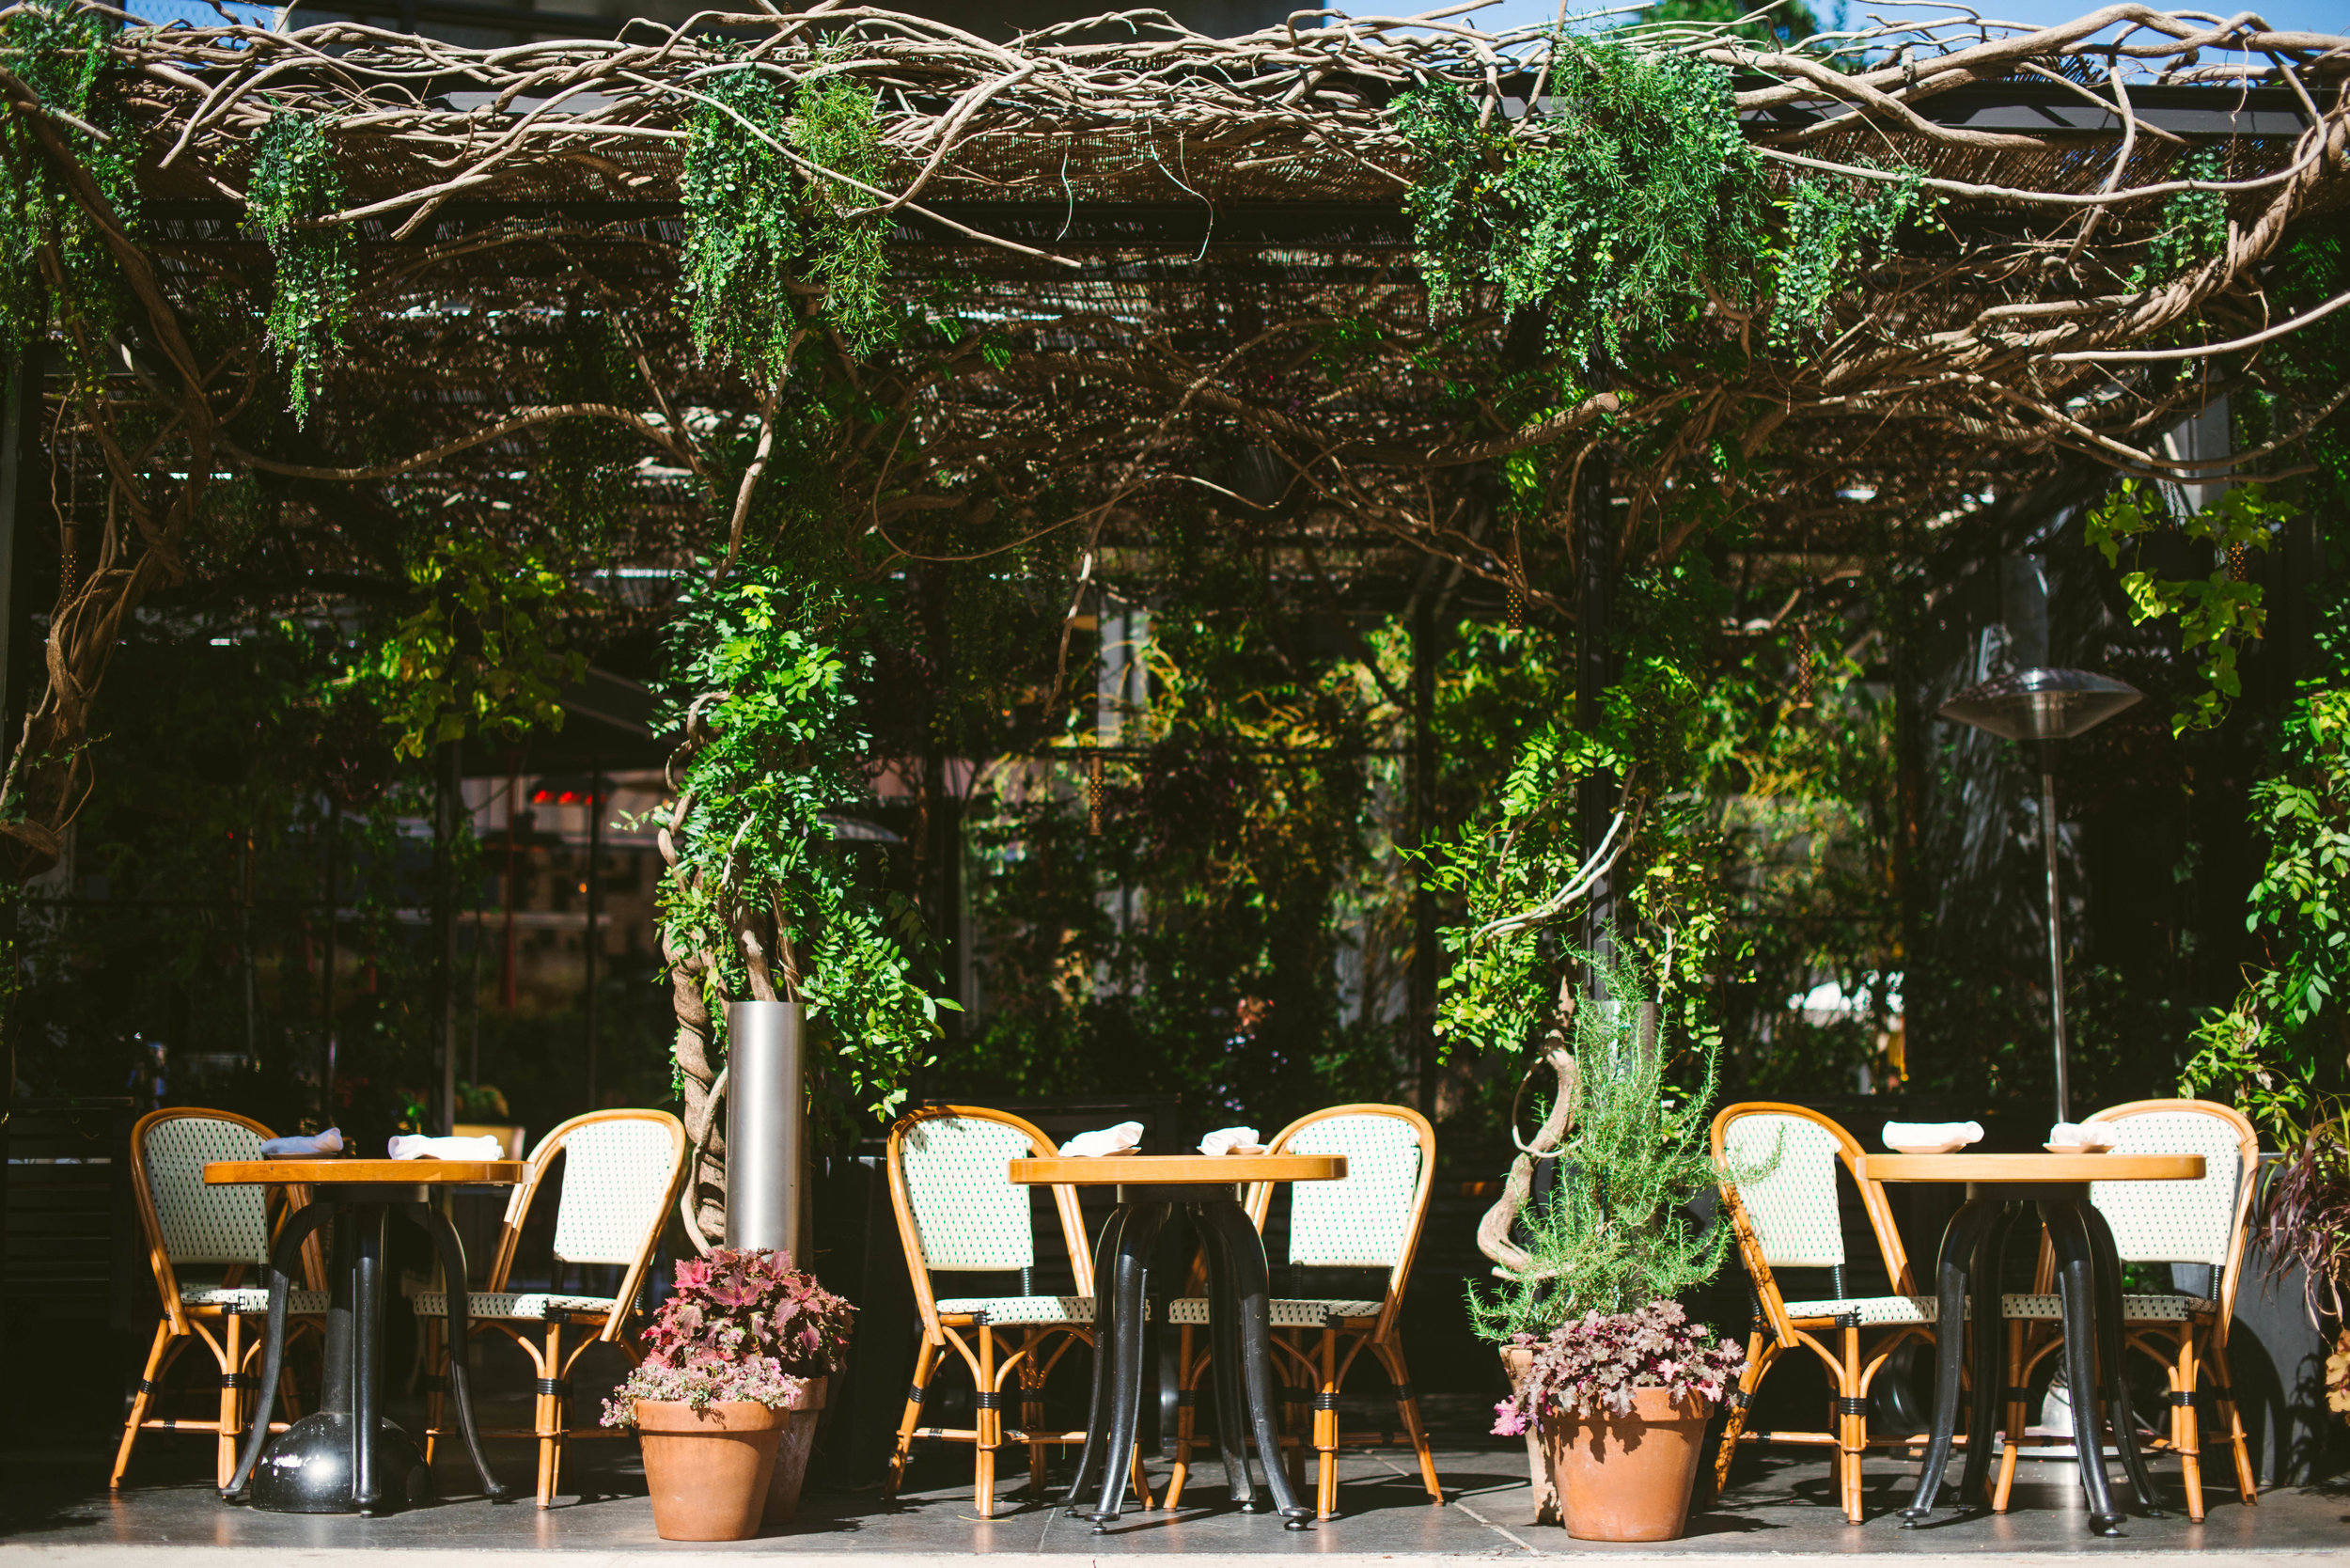 Best Restaurants With Outdoor Seating, What Restaurants Are Doing Outdoor Seating